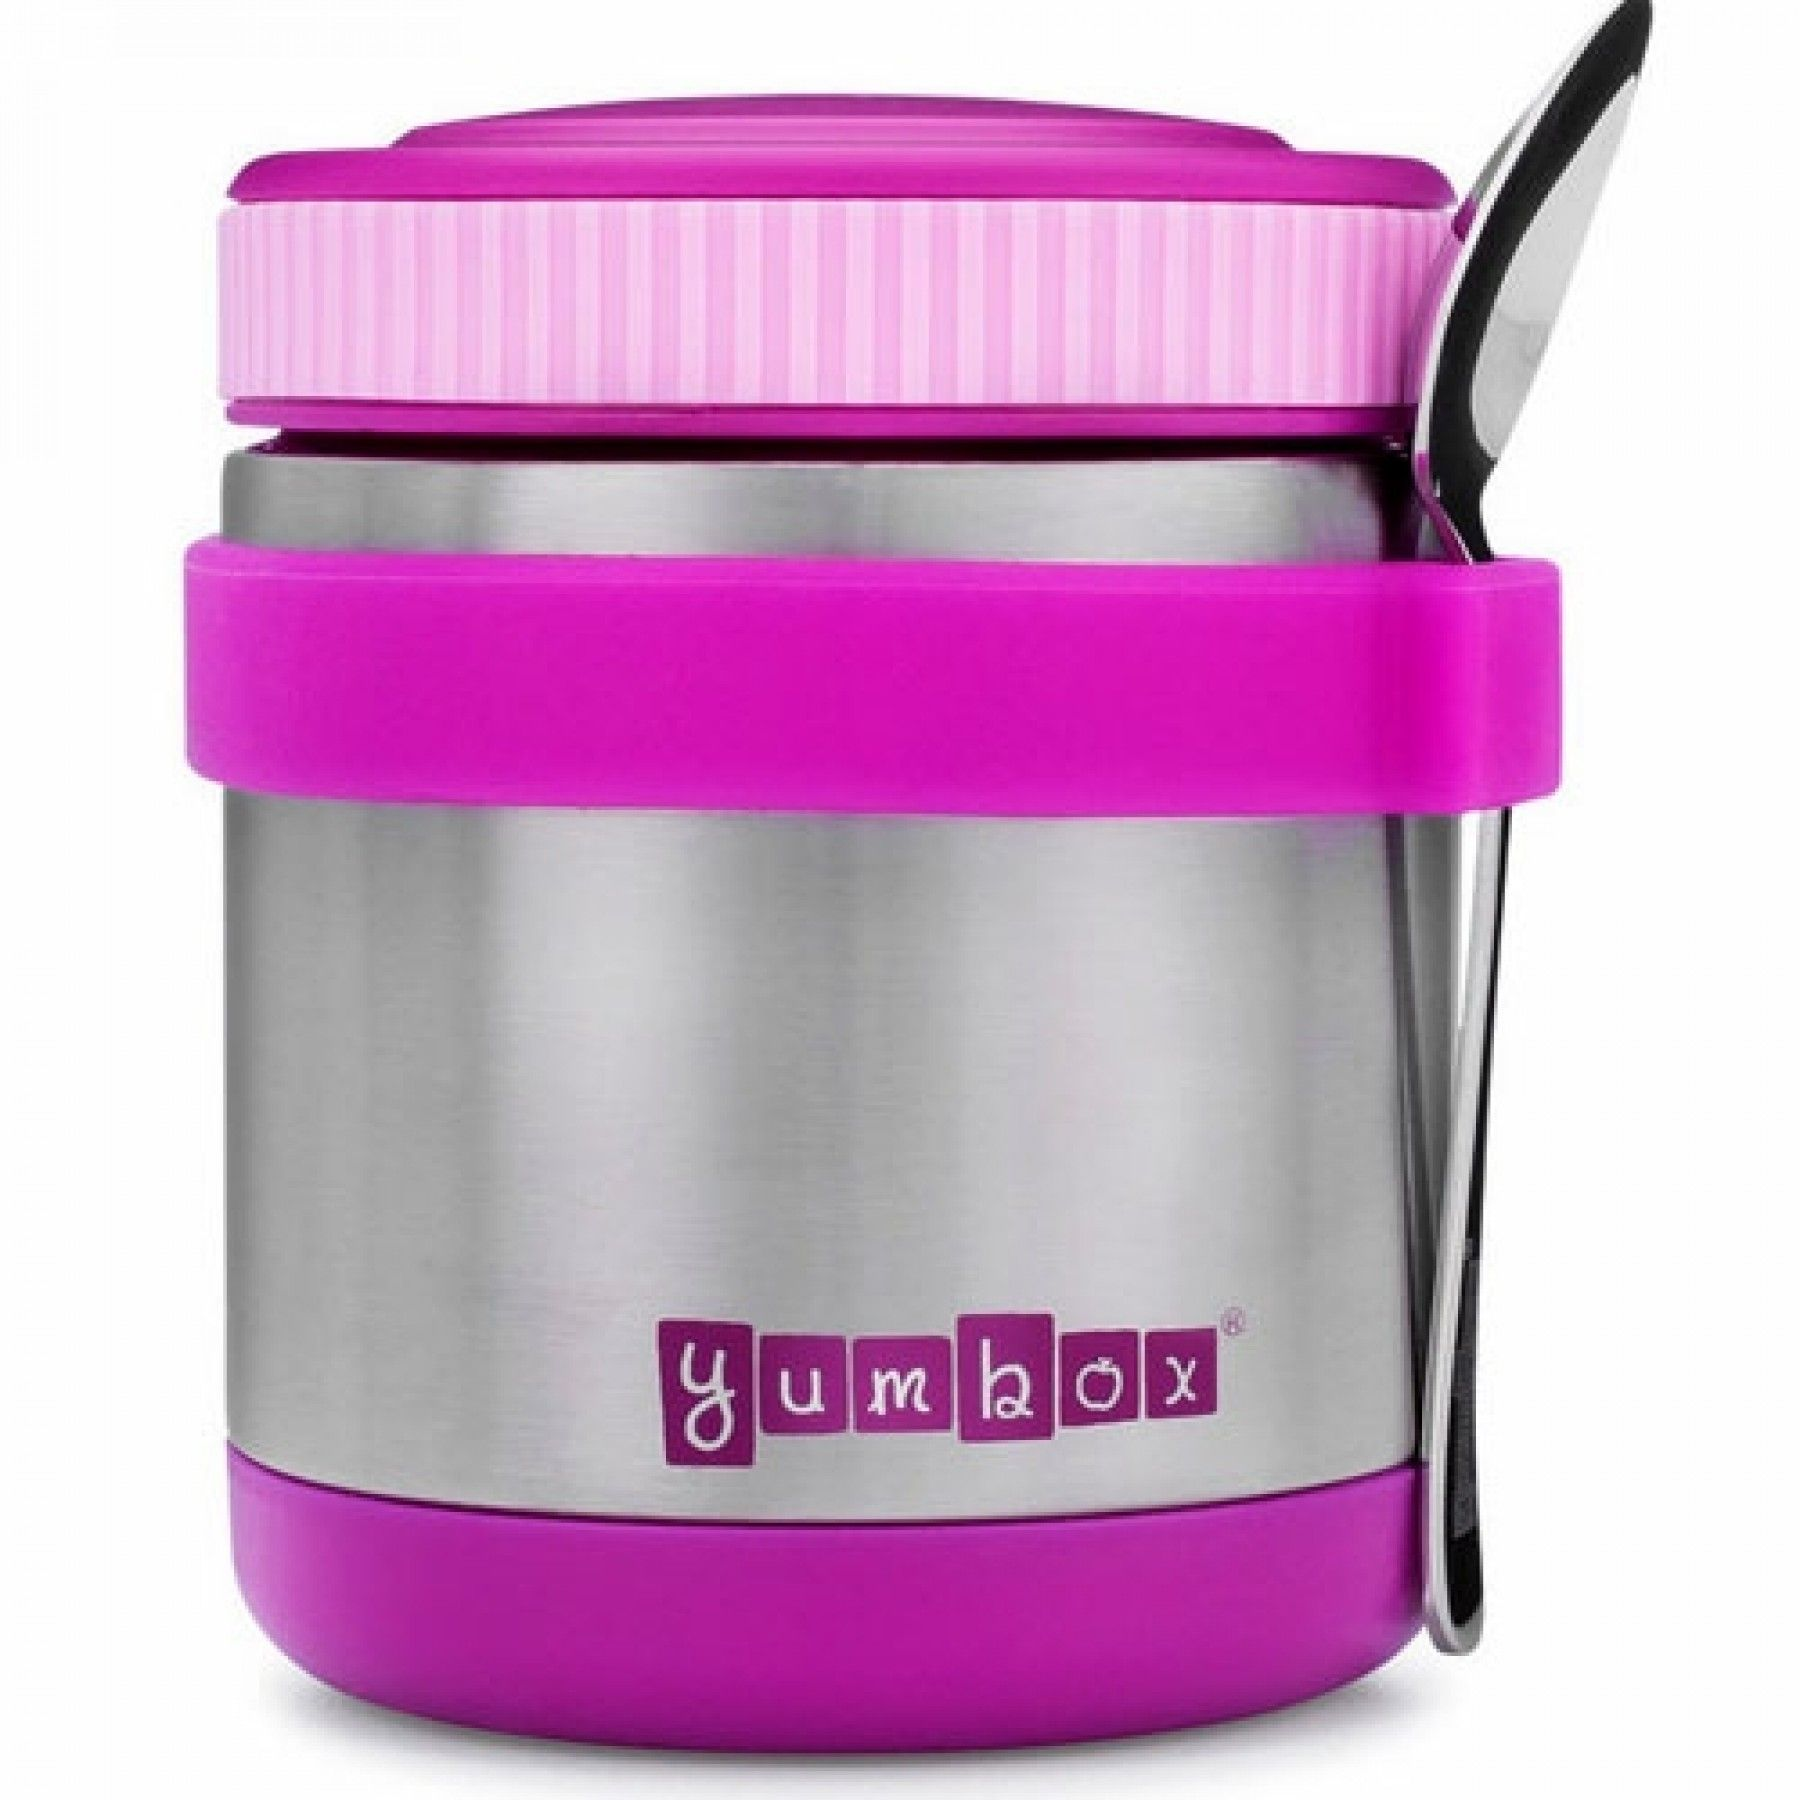 yumbox zuppa thermos container met lepel - paars | ilovespeelgoed.nl